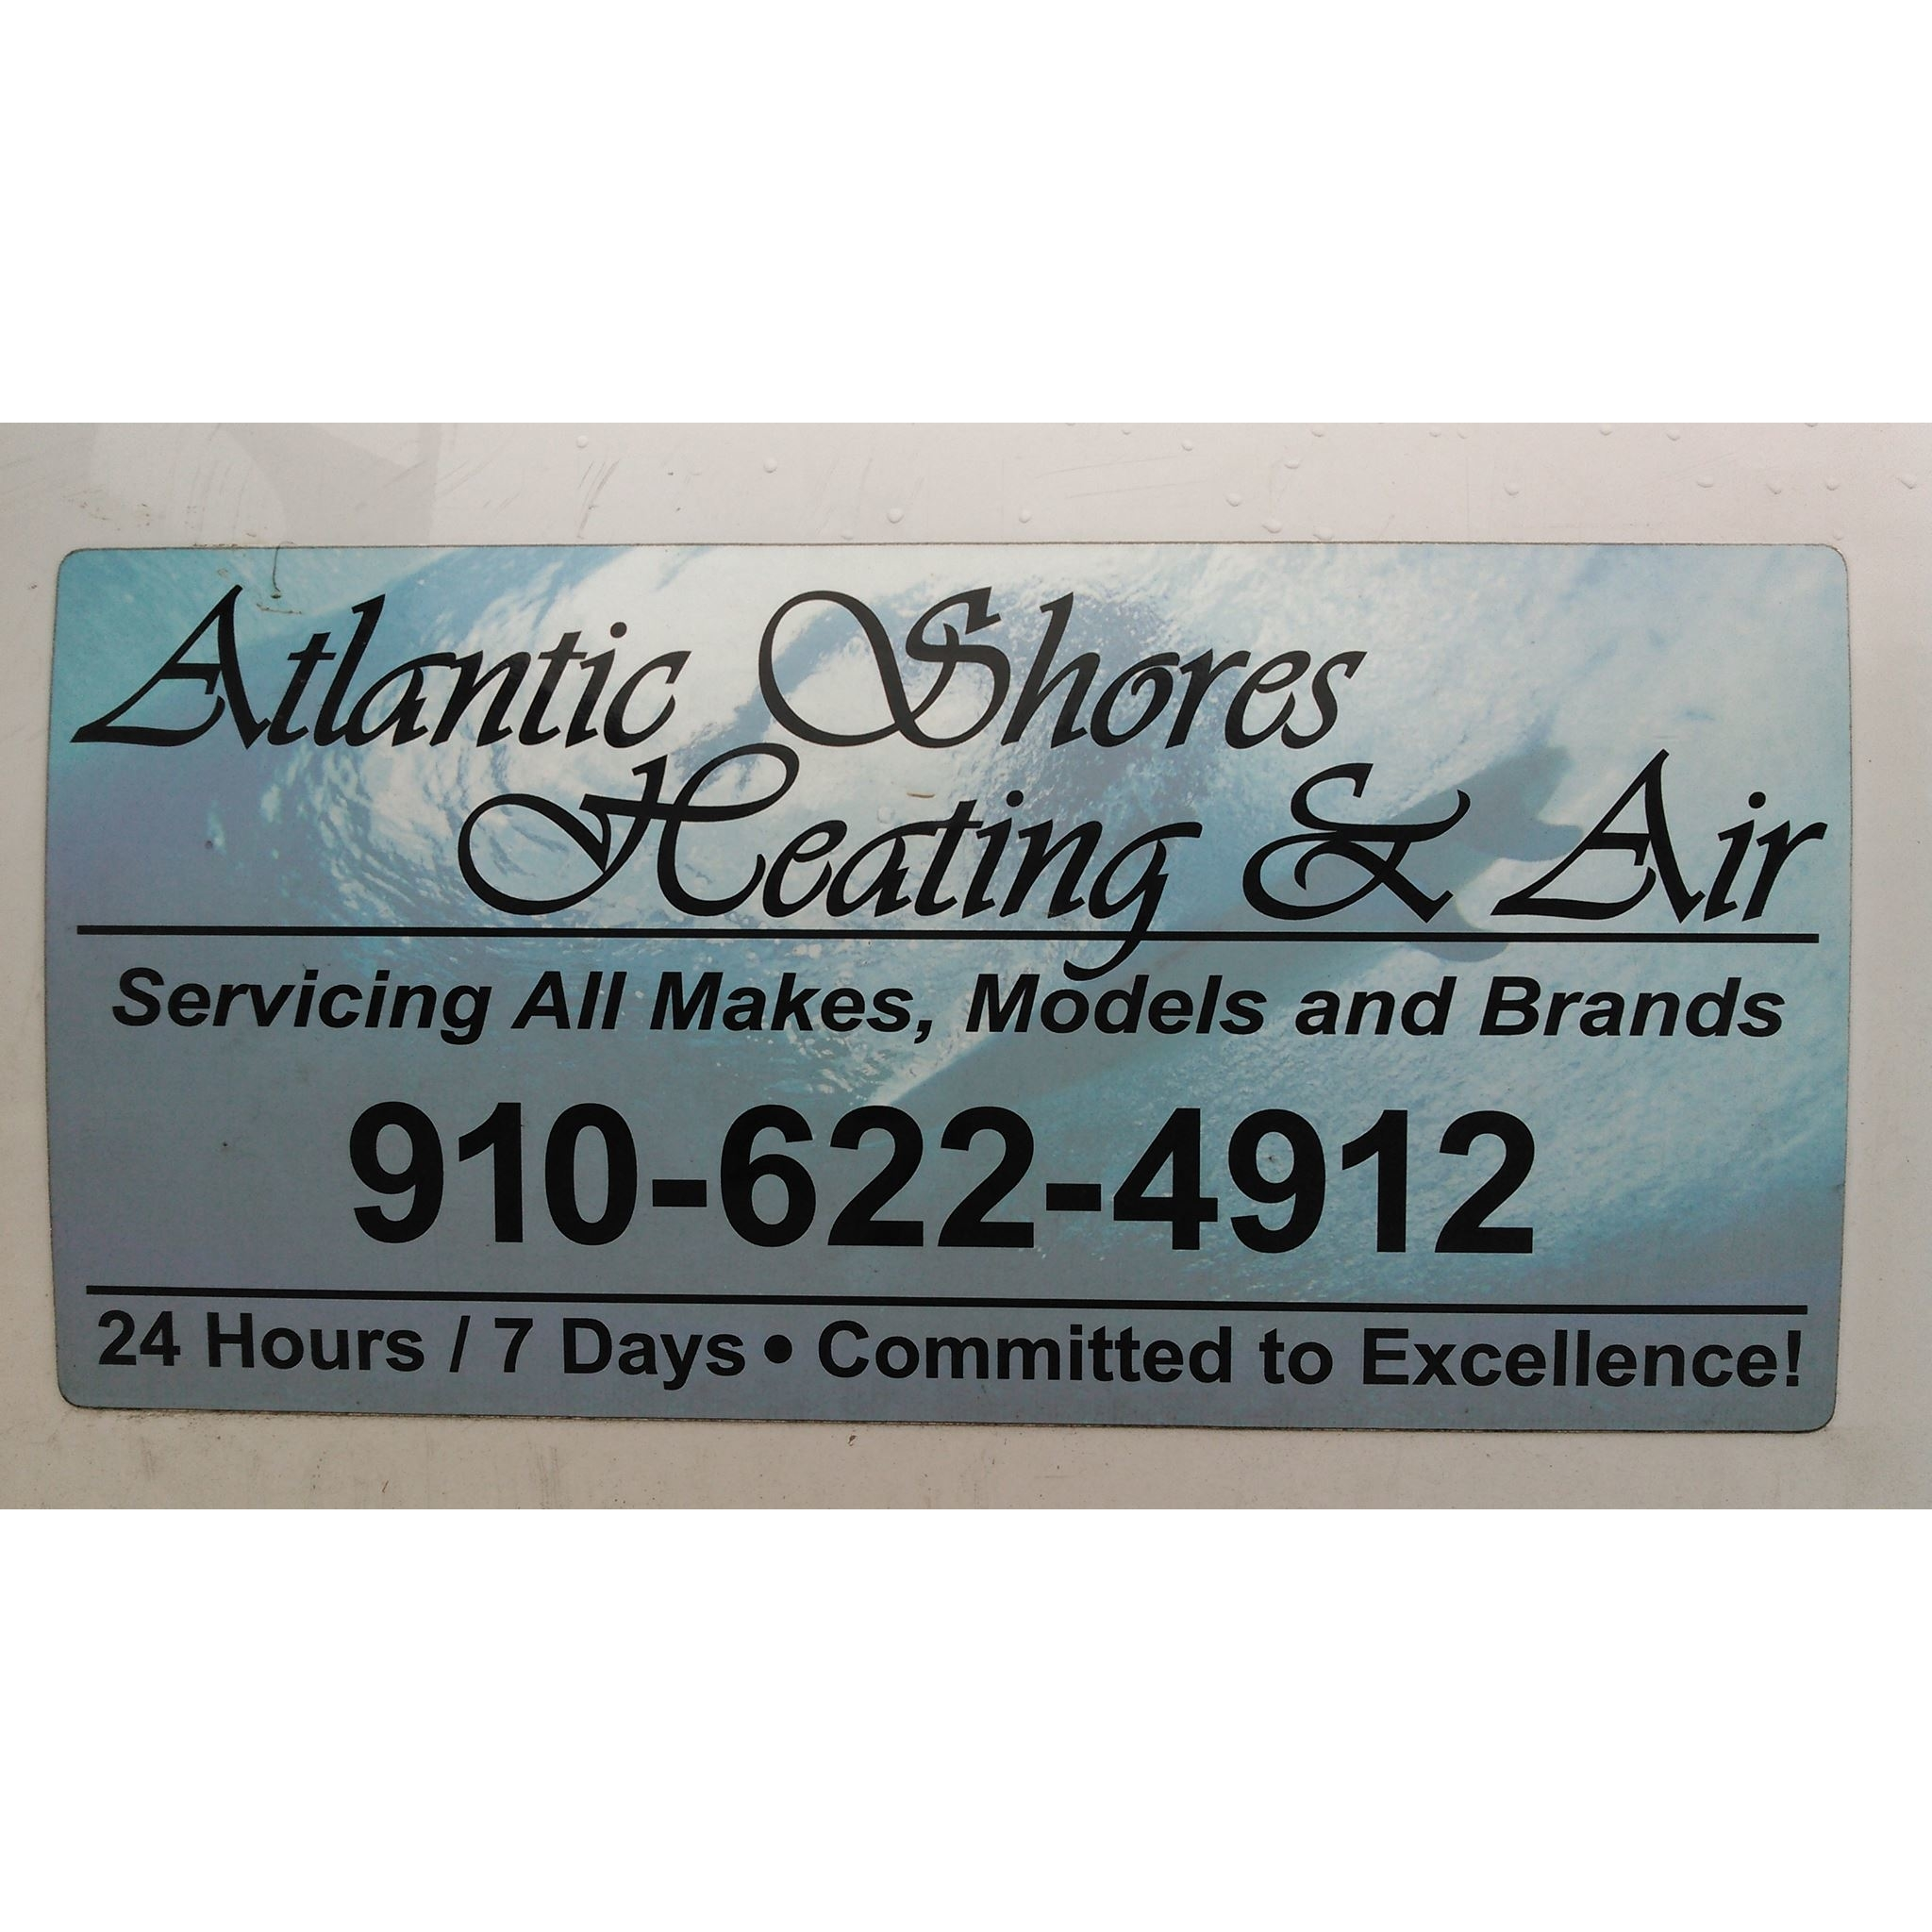 Atlantic Shores Heating & Air image 3